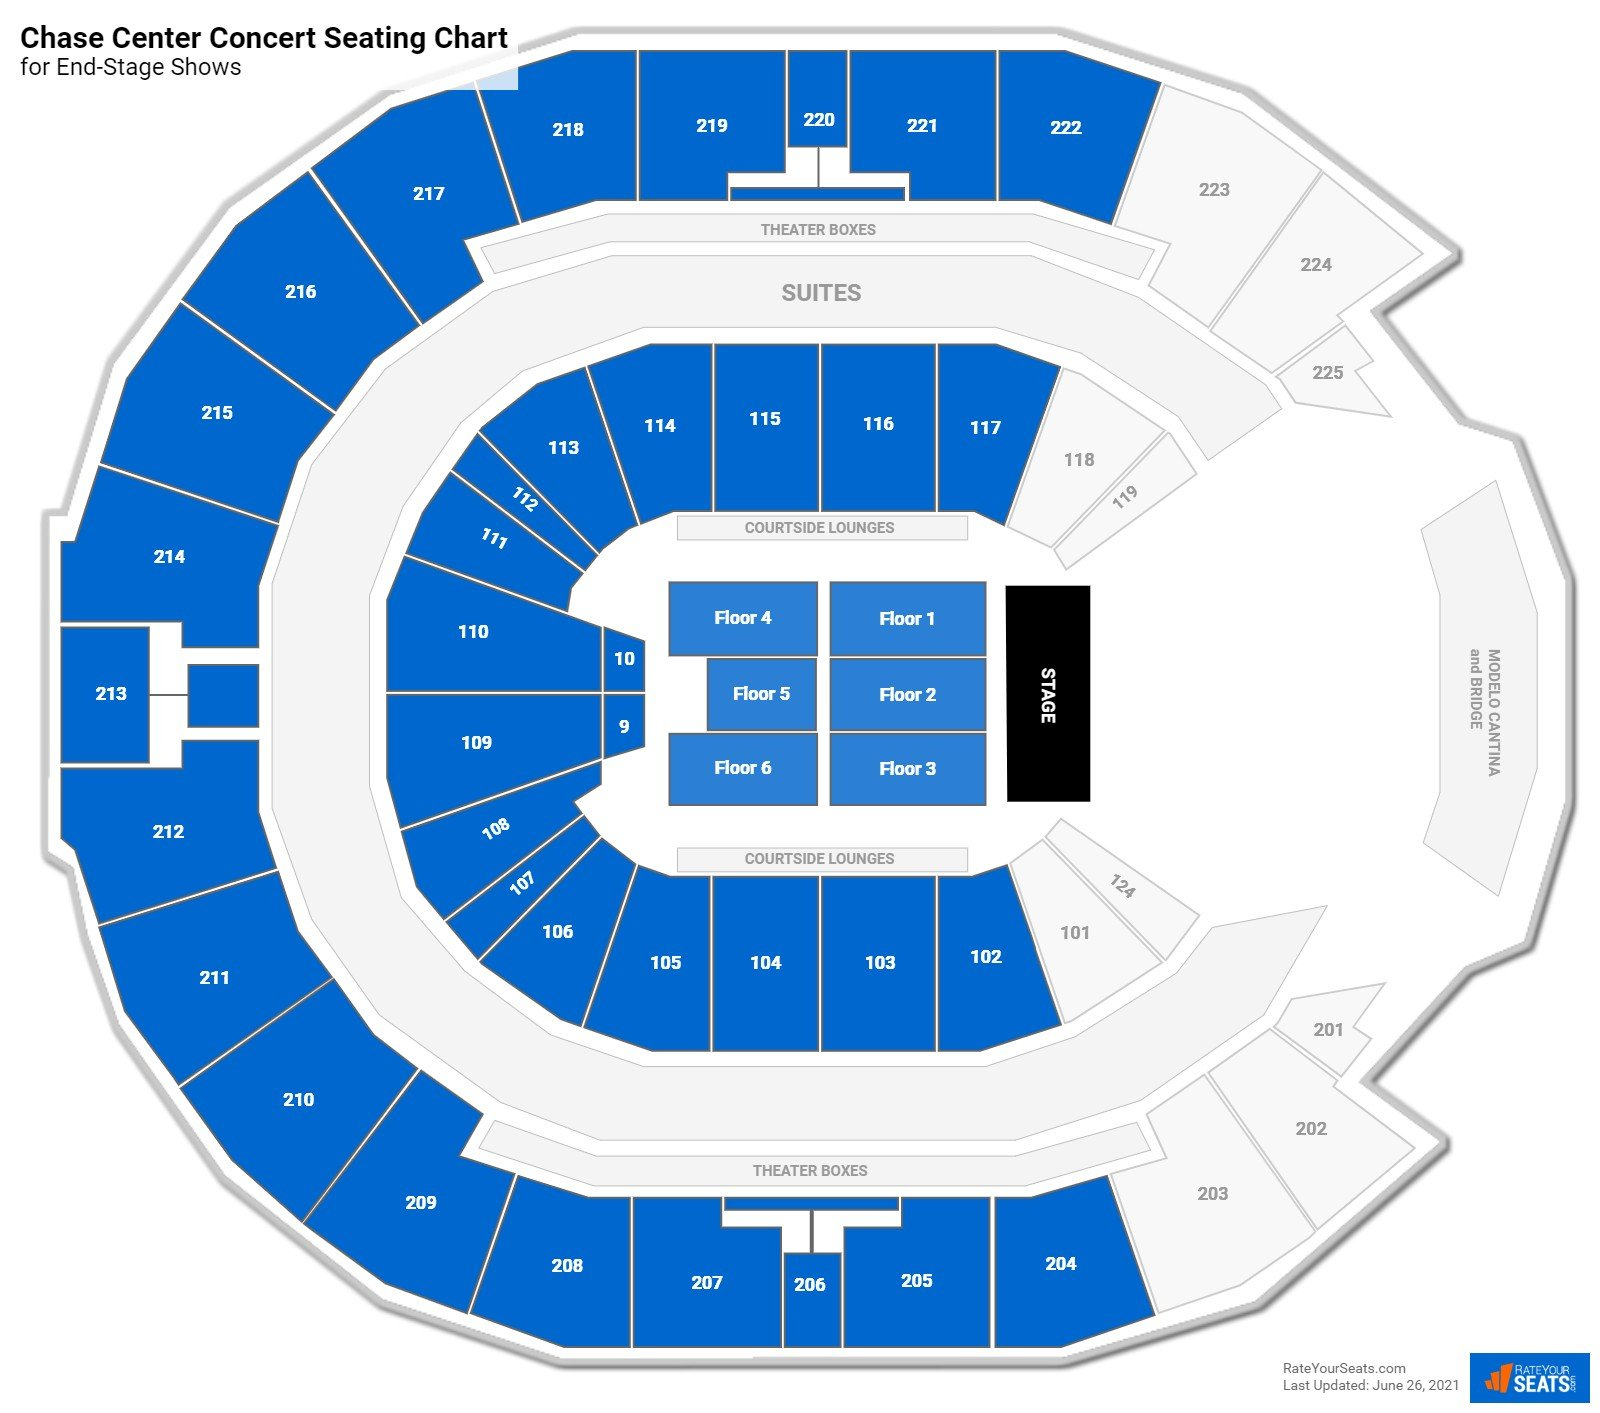 Chase Center Seating Charts For Concerts Rateyourseats Com